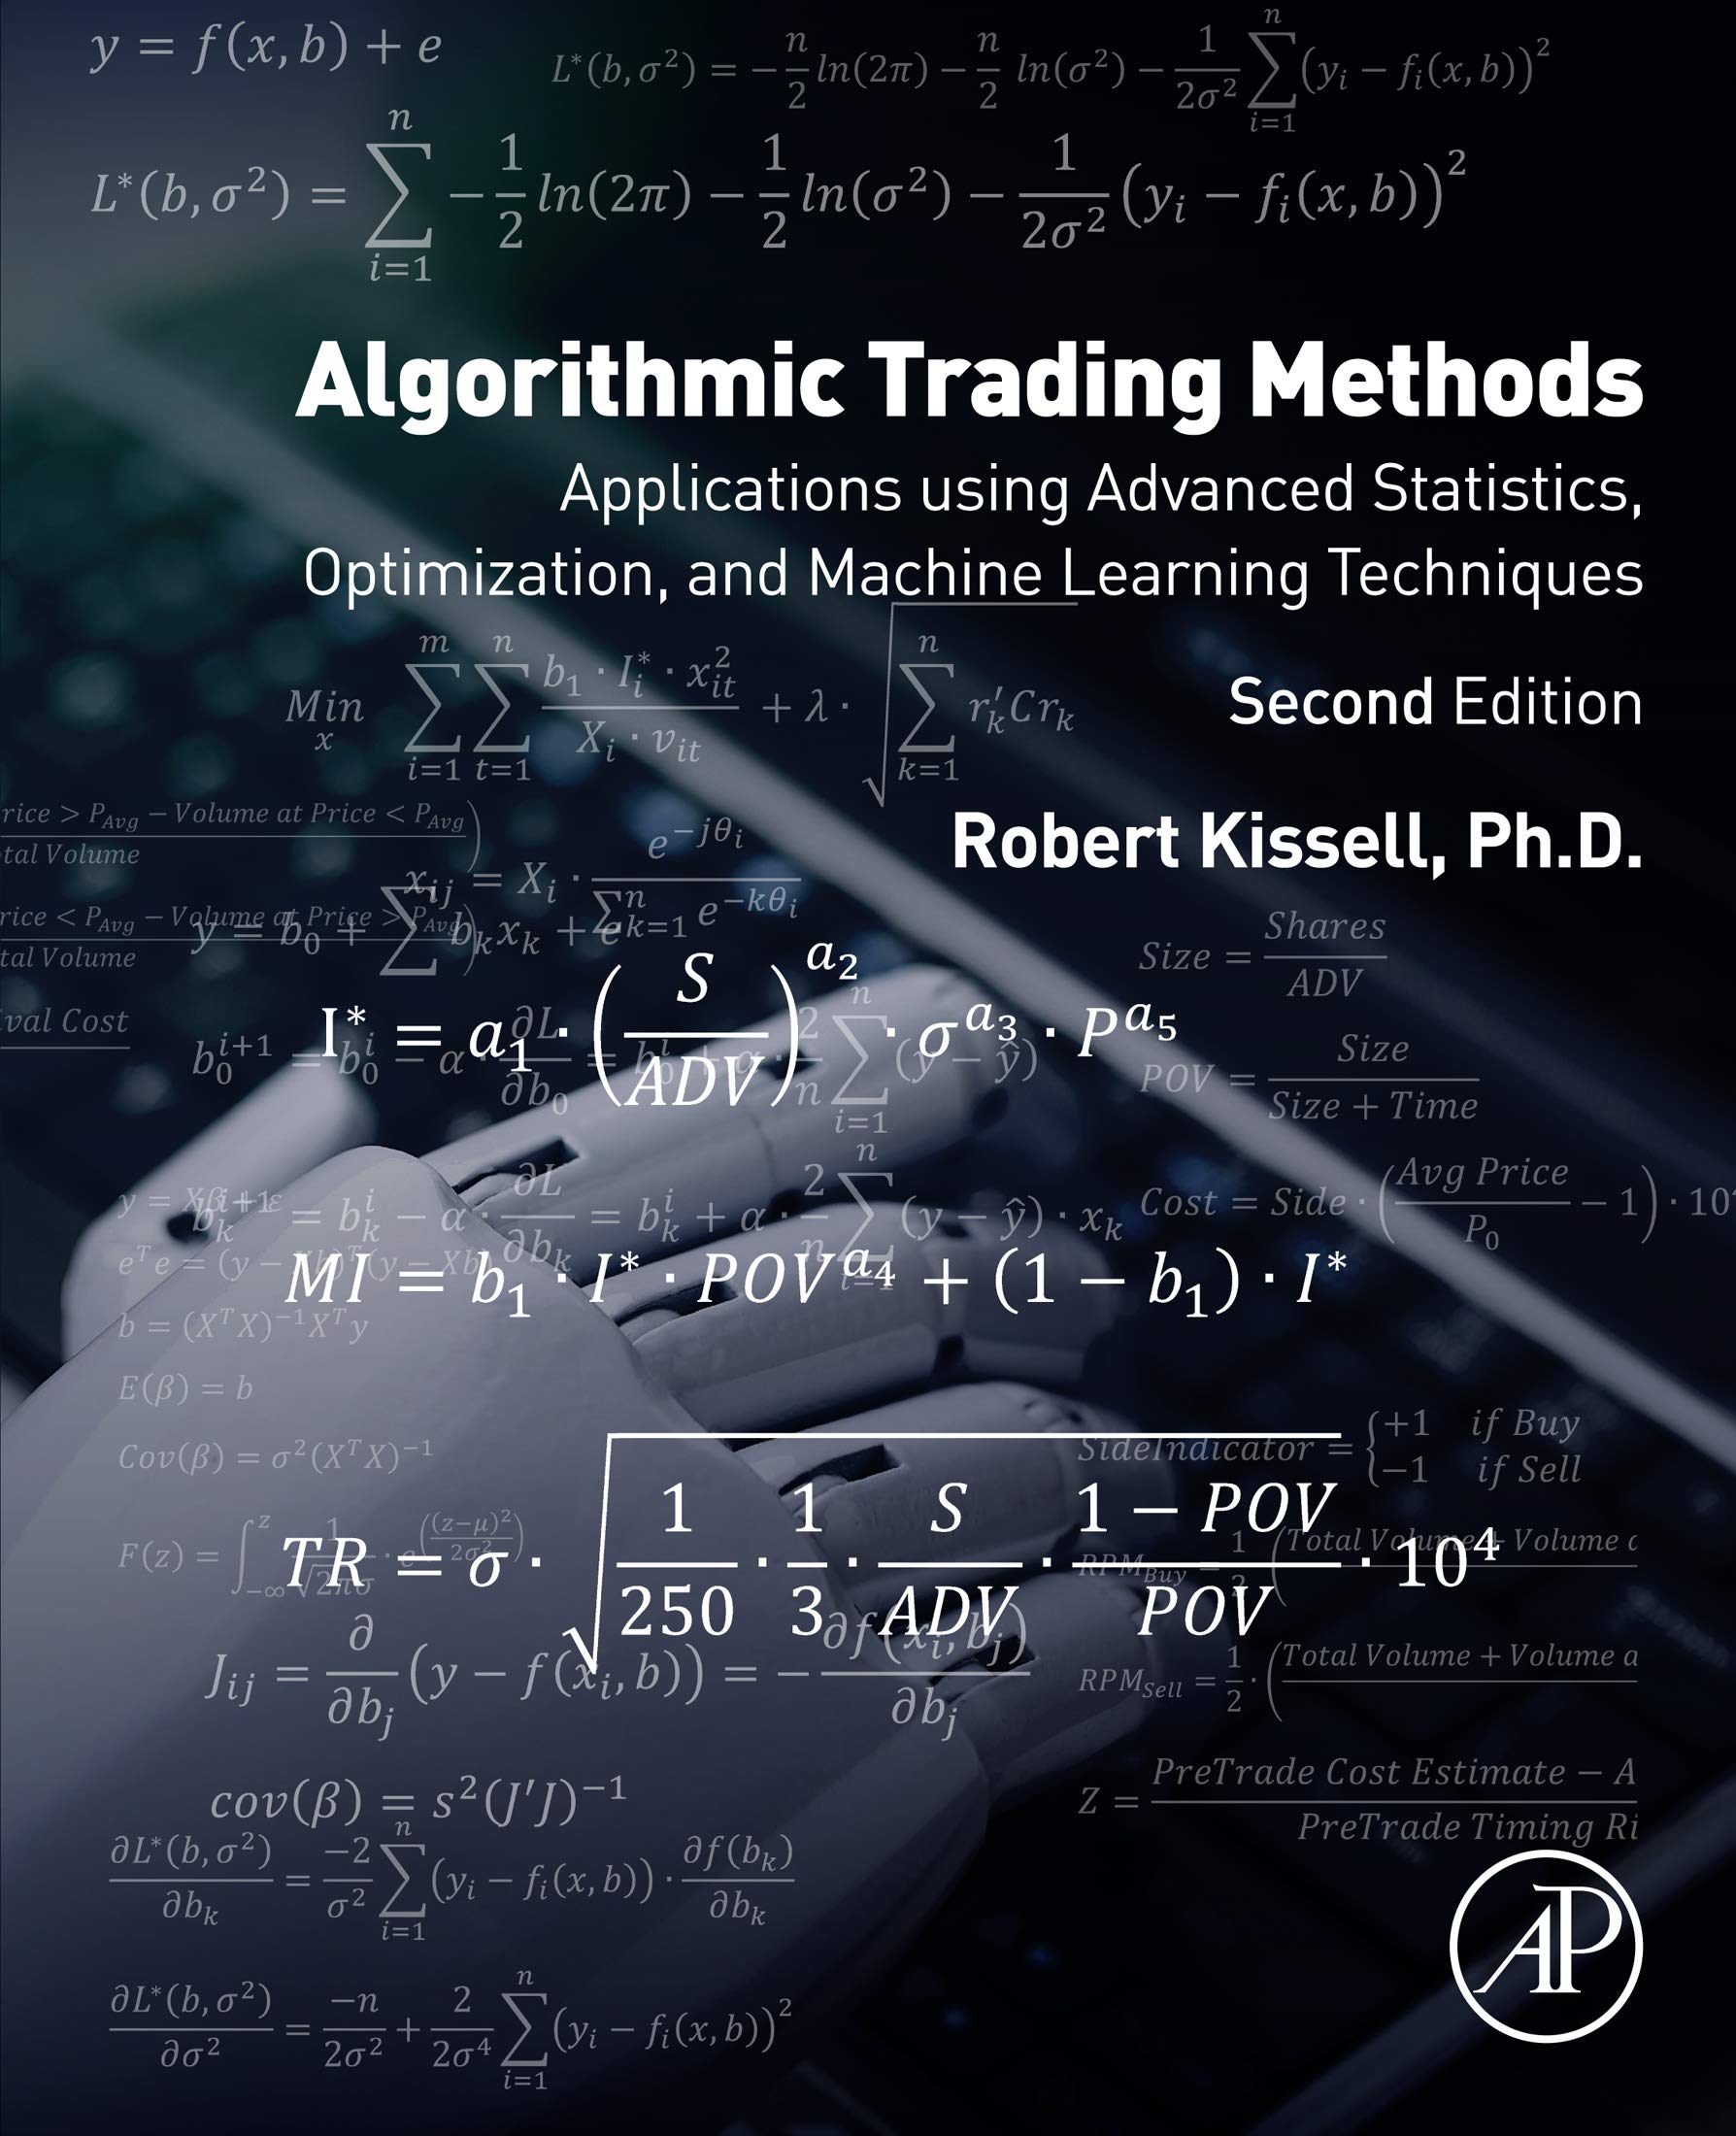 Algorithmic Trading Methods: Applications Using Advanced Statistics, Optimization, and Machine Learning Techniques